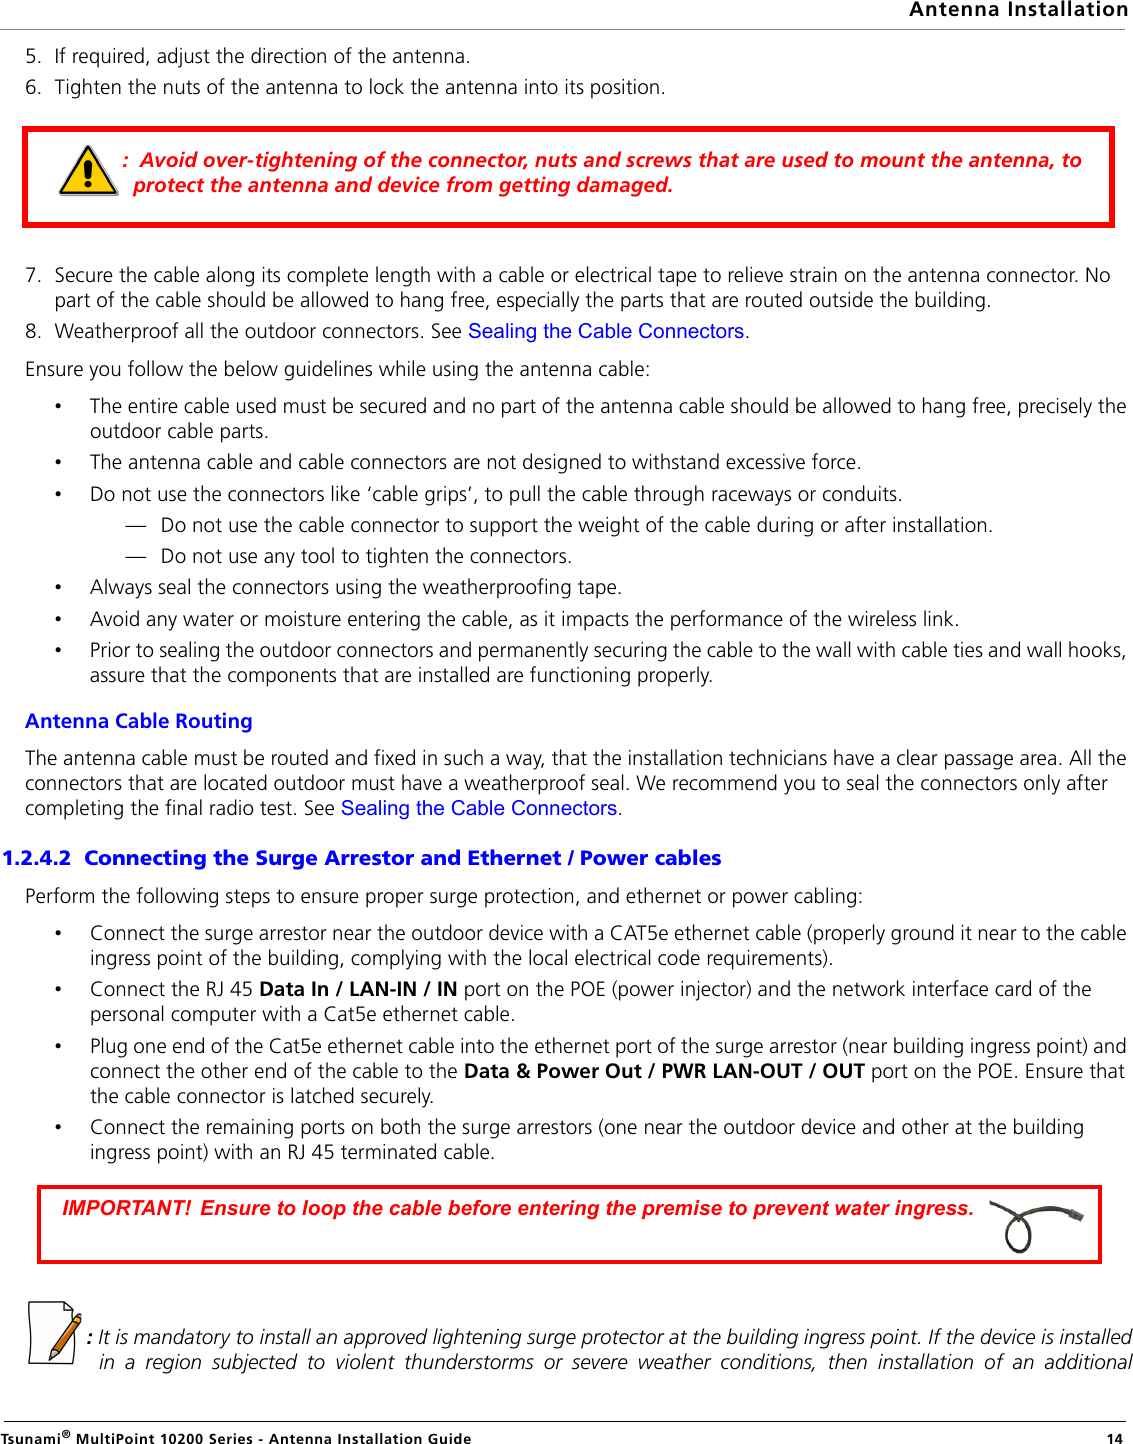 Ethernet And Phone Installation Over Preexisting Cat5 Manual Guide